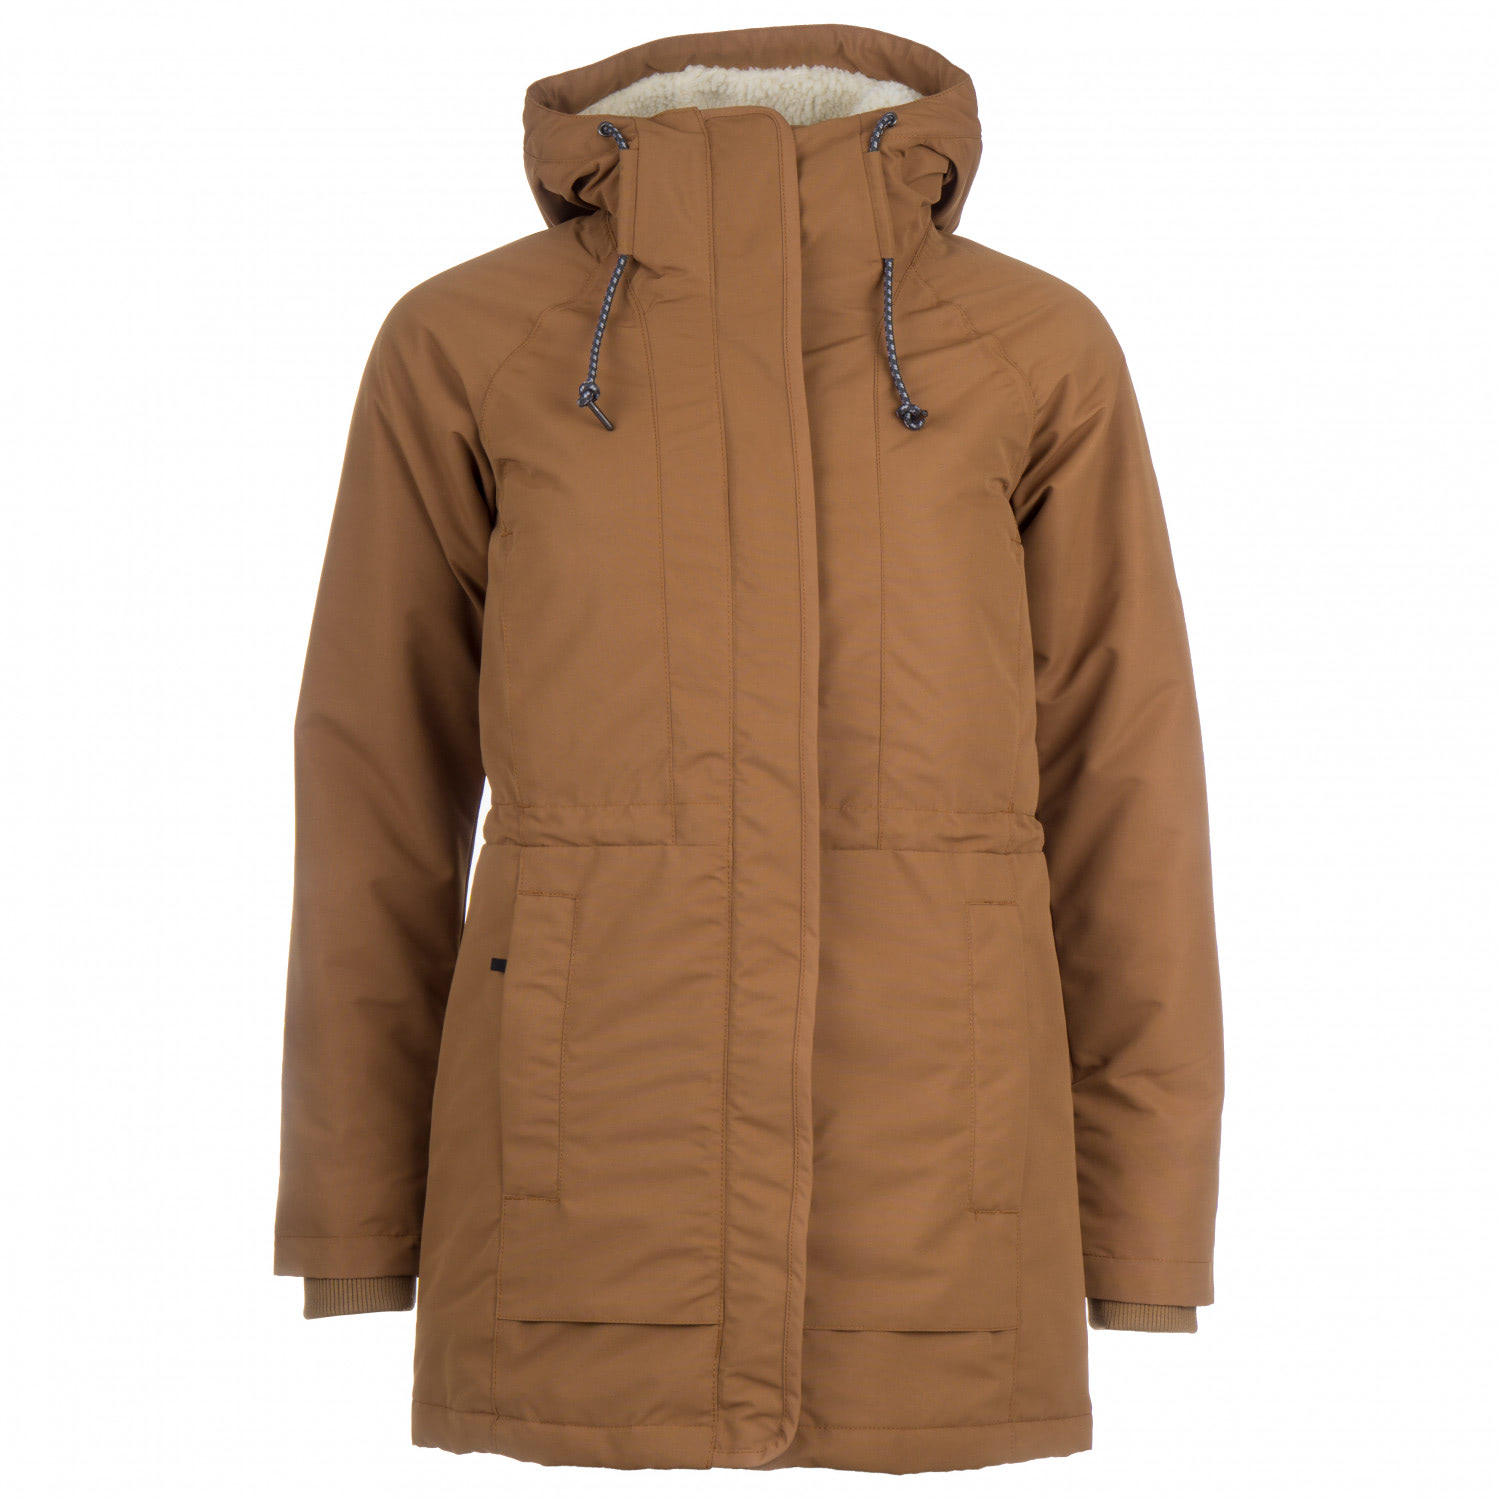 sherpa Lined Jacket   Meaningful Experiences and Eco-Friendly Gift